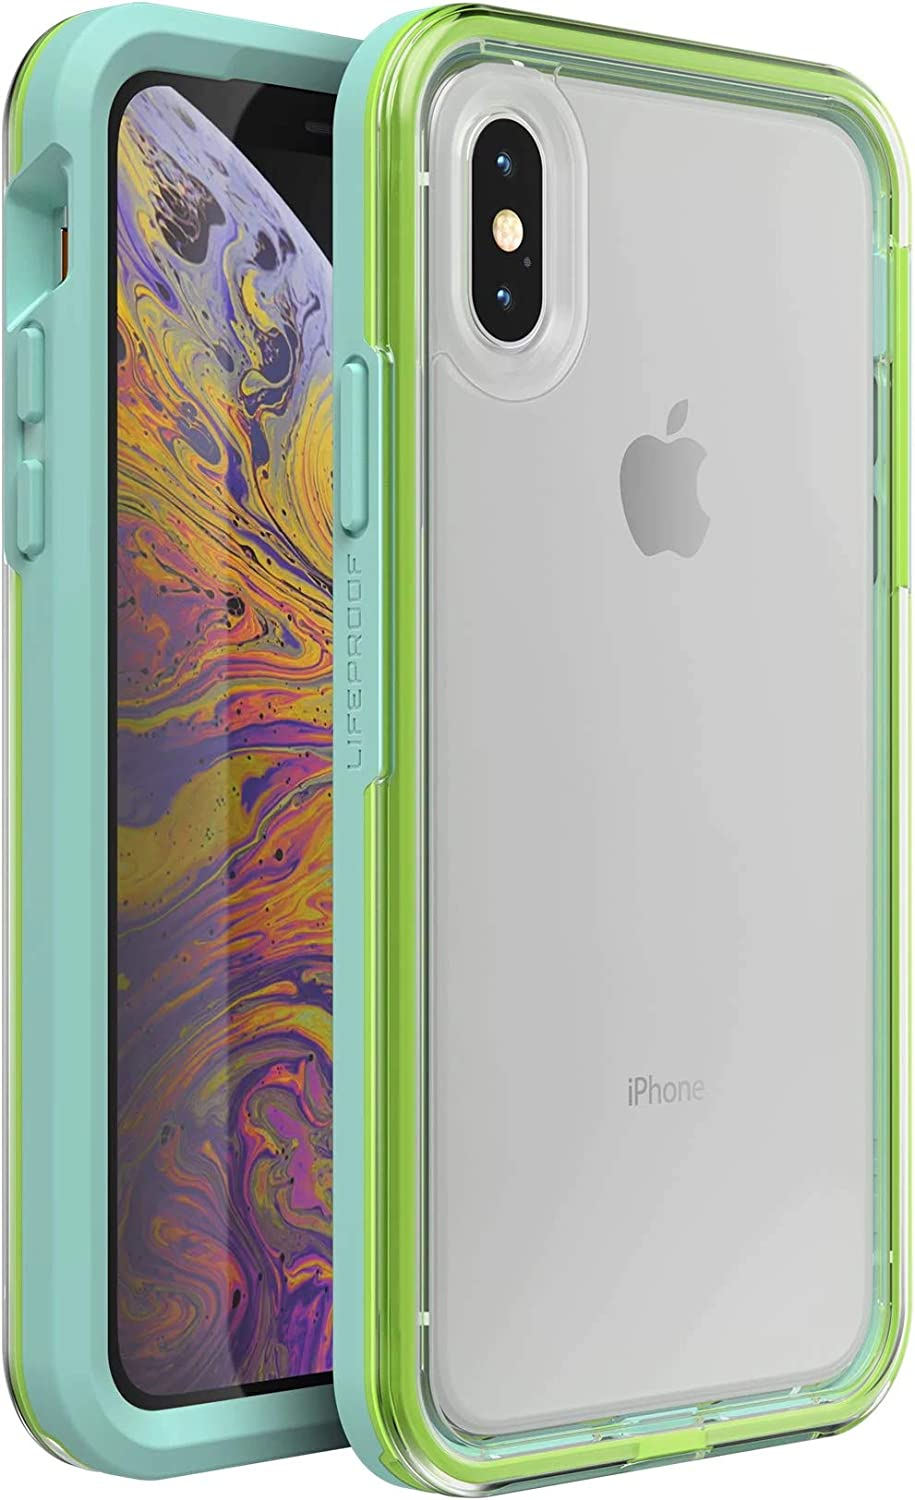 Lifeproof SLAM Series Case for iPhone X/XS (ONLY) - Retail Packaging - Sea Glass (Clear/Green/Blue)